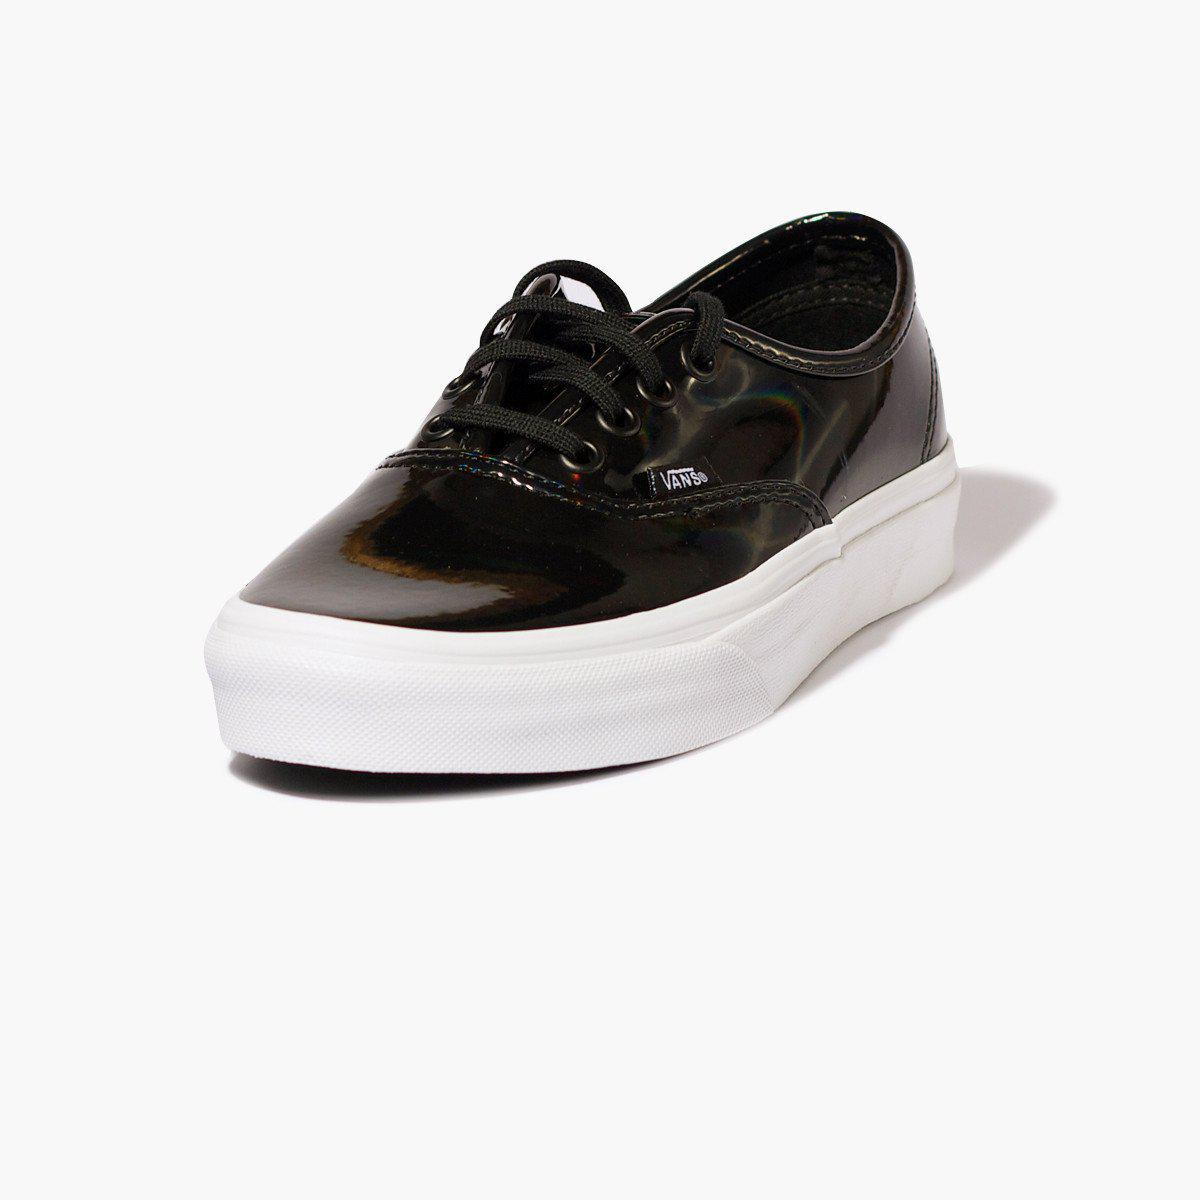 a003da37be Vans Authentic Patent Leather in Black - Lyst